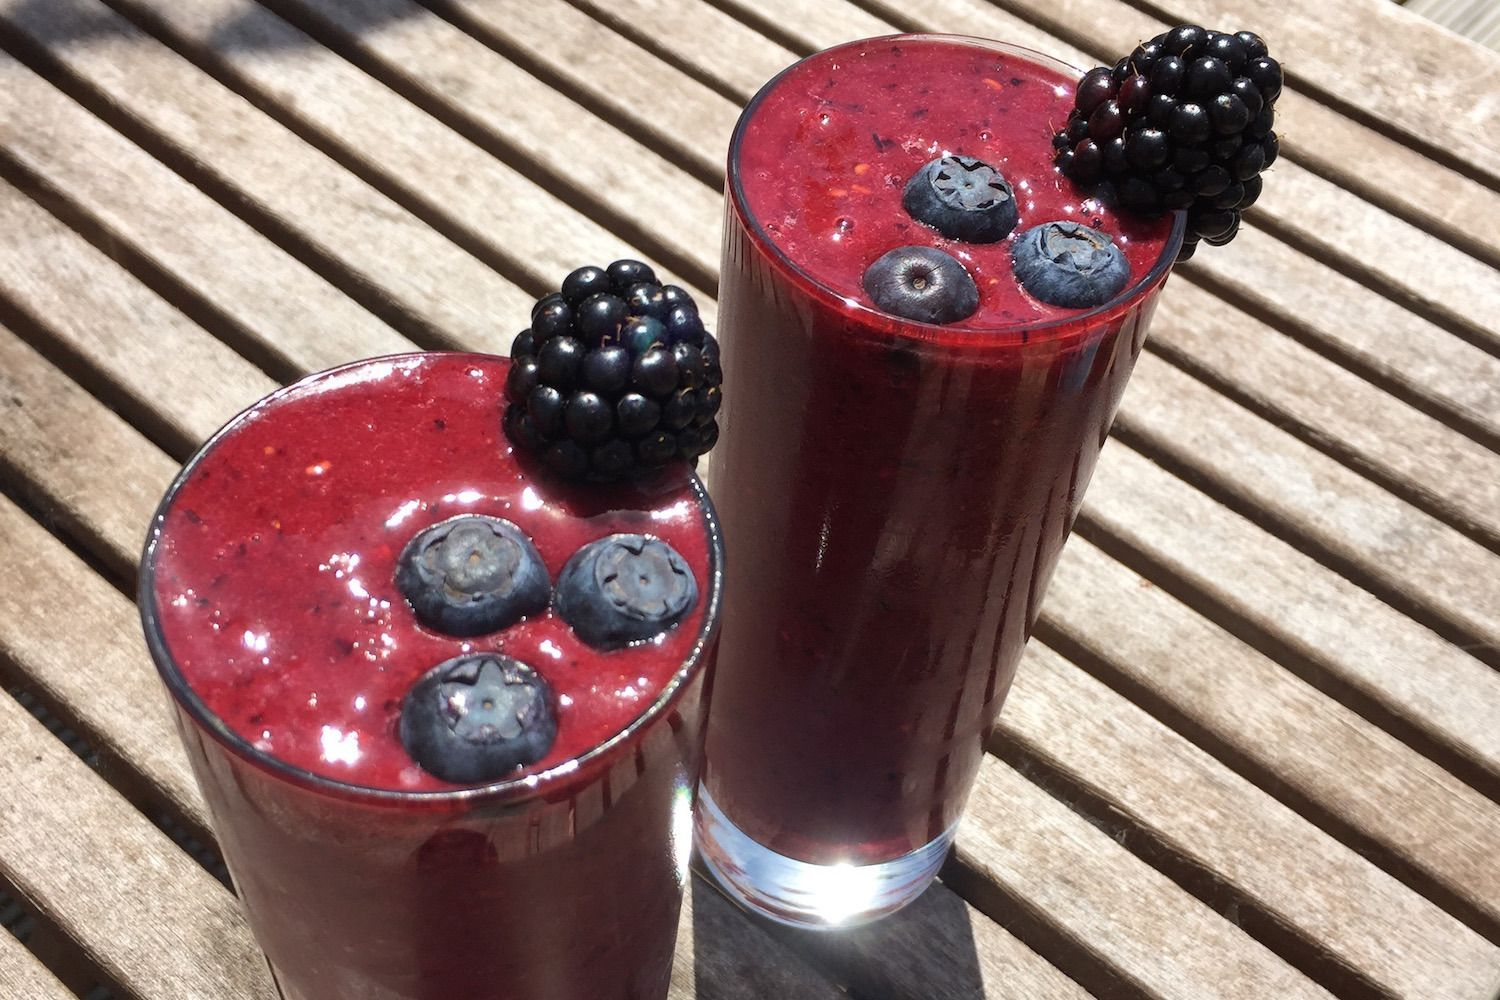 Bloody Berrie: Zomerse Rode Smoothie